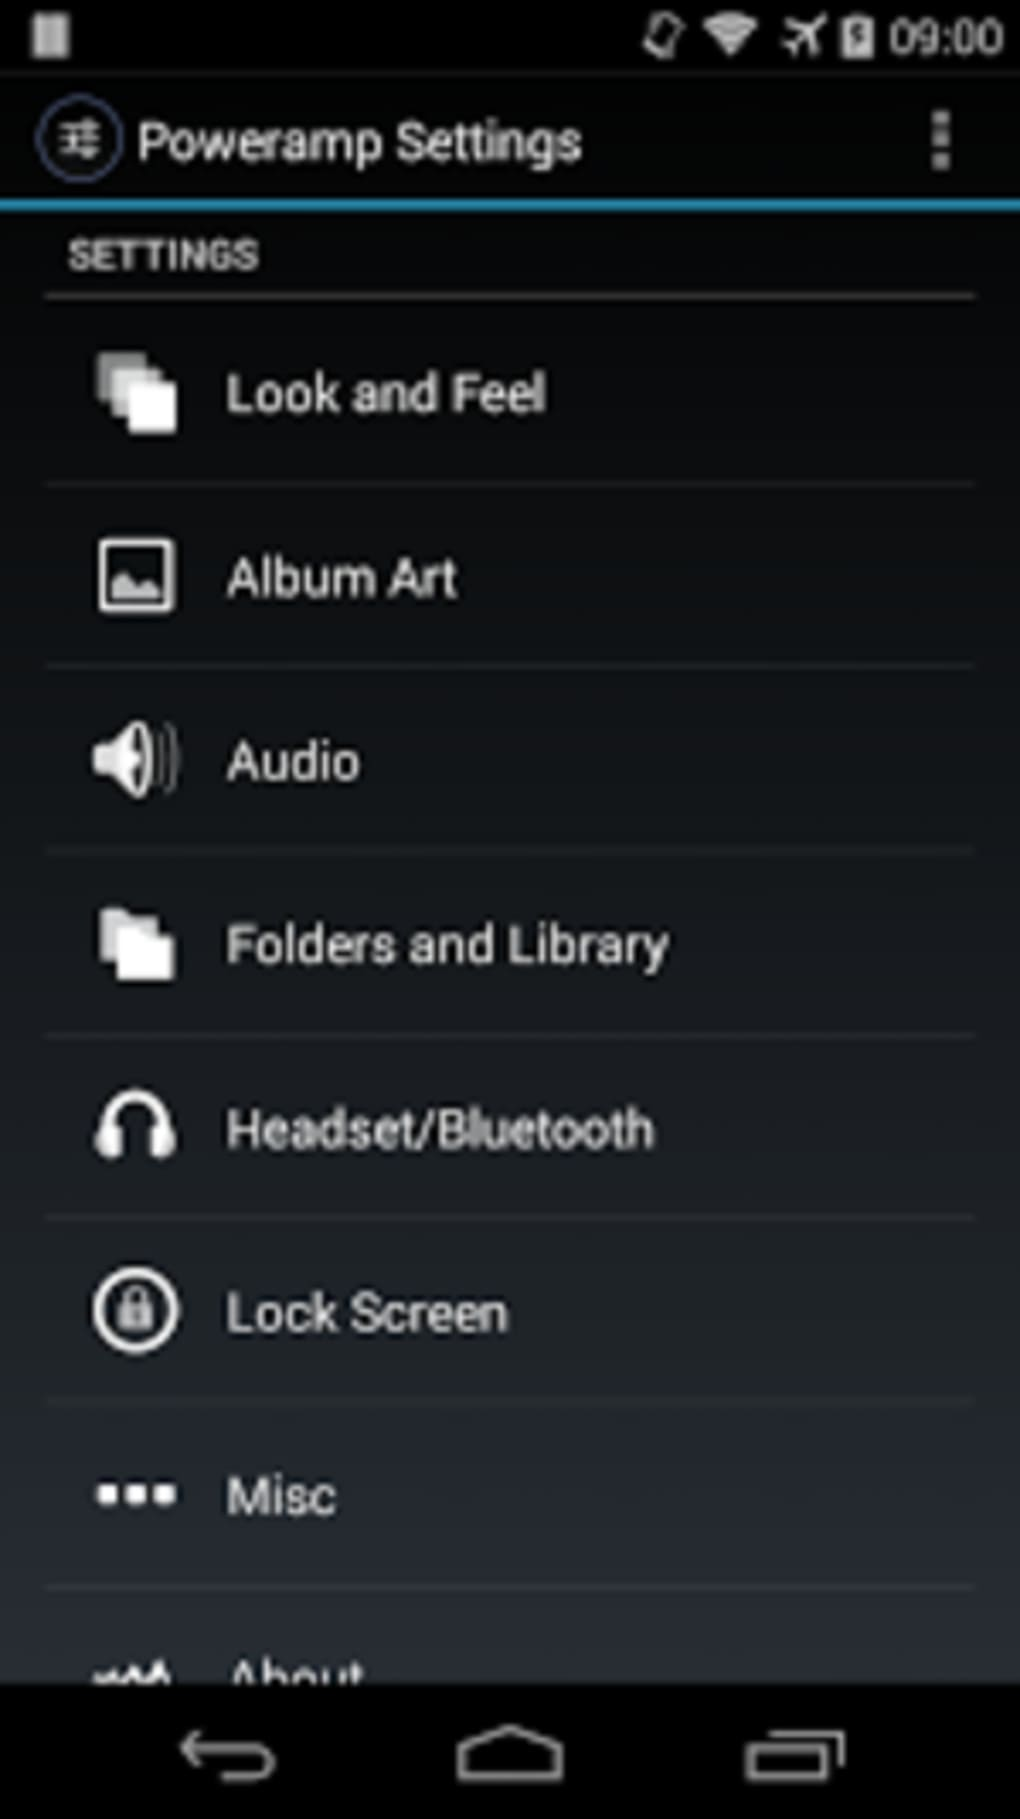 Poweramp Full Version Unlocker Rexdl Apk unlocked all features premium from deporfc.com free download with direct link. poweramp full version unlocker rexdl apk Unlimited Money, handy spiele download kostenlos vollversion, Gems, Ad-Free,God Mode, Ammo, poweramp full version unlocker rexdl apk Full Unlocked all items, handyspiele kostenlos downloaden ohne anmeldung, Android Mod Games, Apps ...